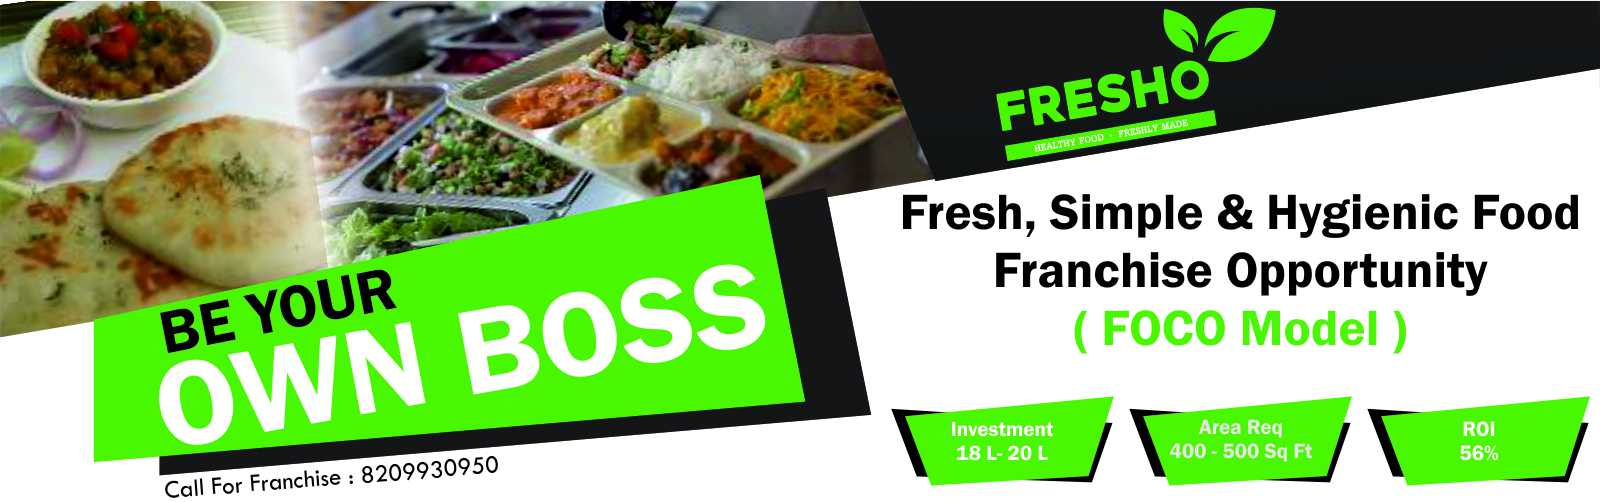 admin/photos/Fresho  ( Fresh, Simple & Hygienic food )- FOCO Model